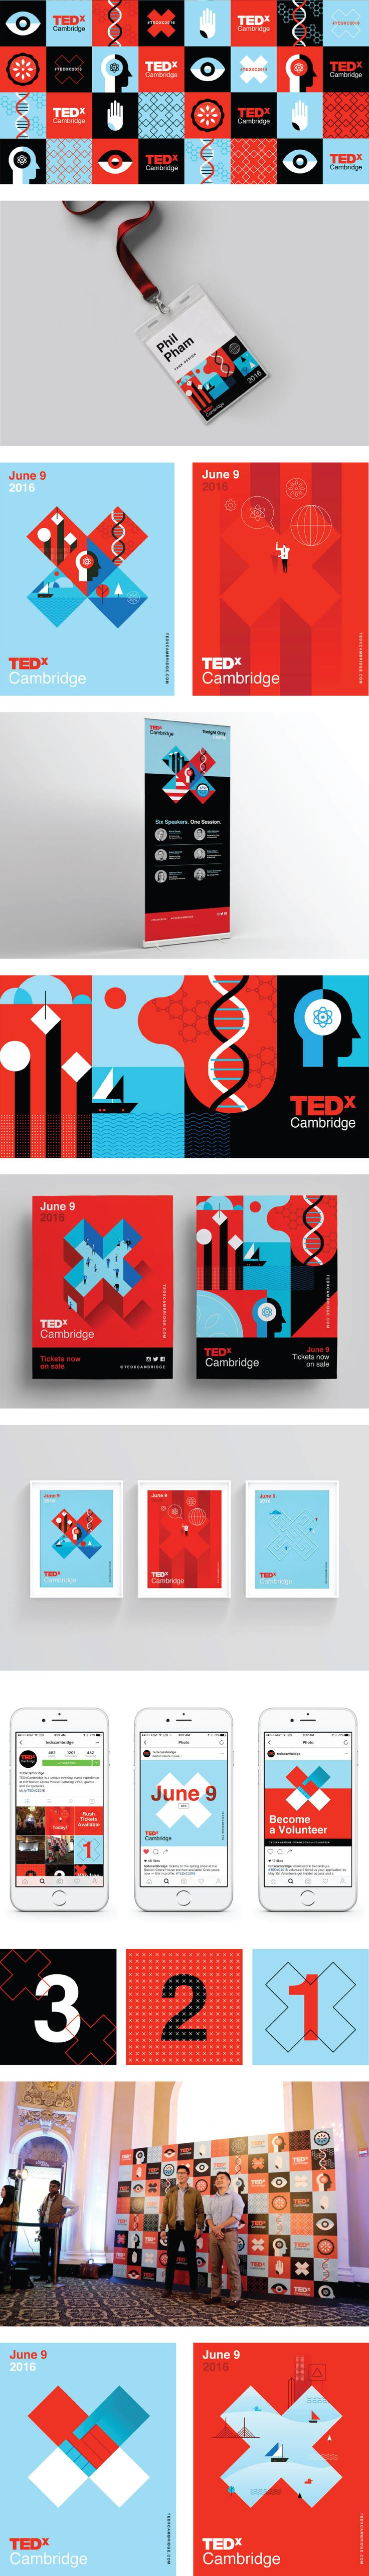 Created by San Francisco based designer: Phil Pham / philphamdesign.com -- Massachusett's TEDxCambridge event is the largest TEDx event in the world with nearly 2,000 attendees. In anticipation for the even't pivotal growth, TEDxCambridge needed updated event branding, conference wayfinding, and digital marketing to draw attendees into the ecosystem and engage them throughout the Boston Opera House.